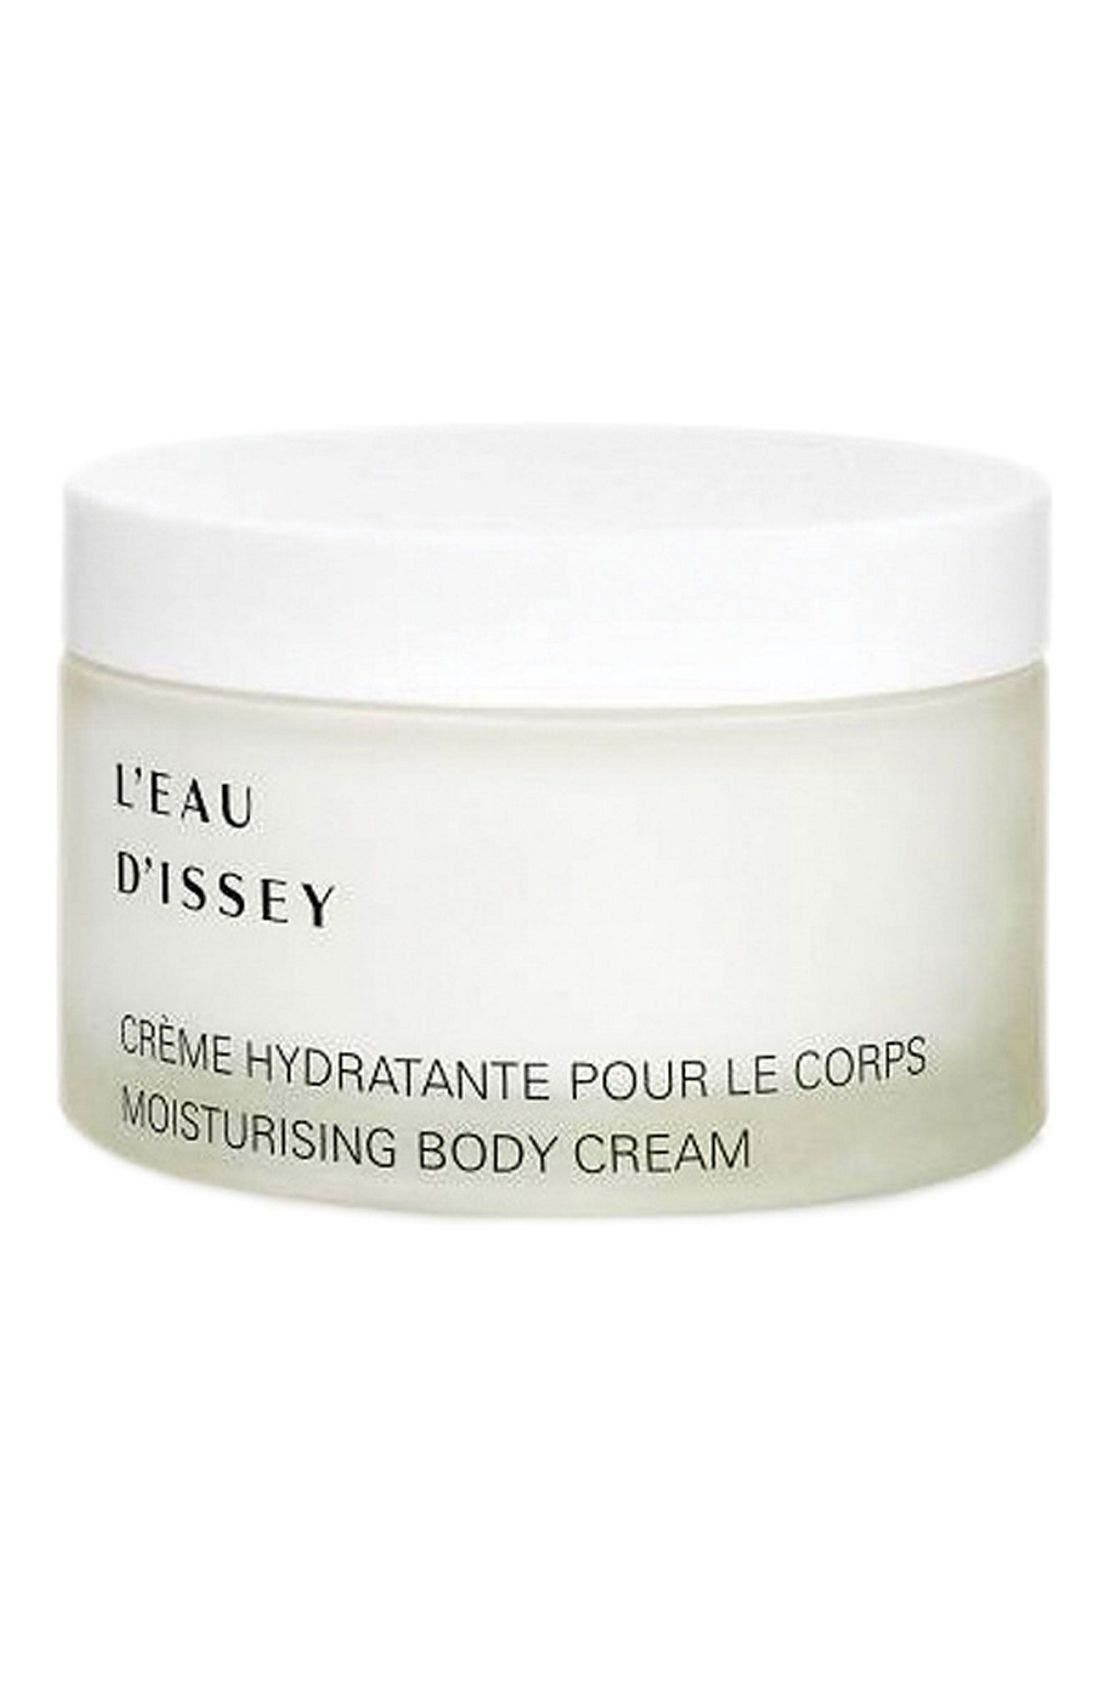 'L'Eau d'Issey' Moisturizing Body Cream,                             Main thumbnail 1, color,                             NO COLOR